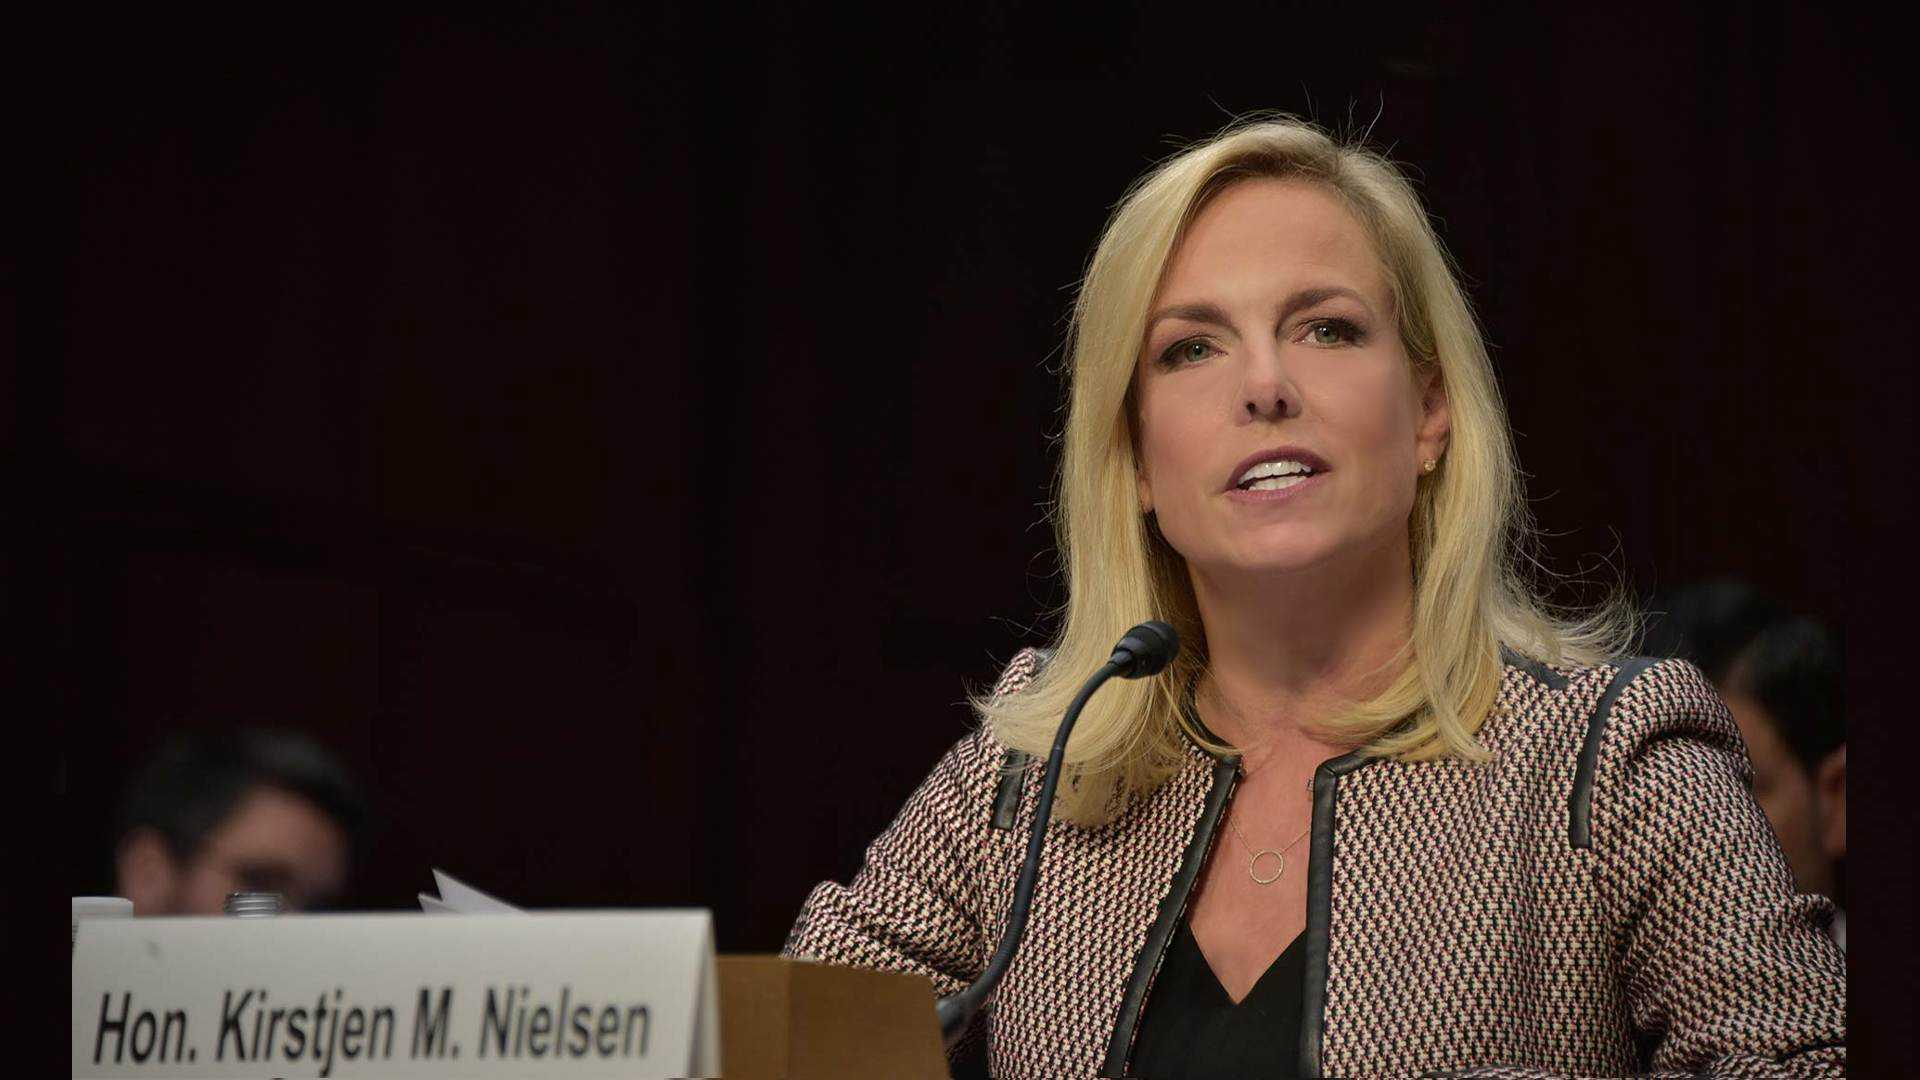 An Image of Kirstjen Nielsen answering questions from congress, she is seated at a table and looking up she is smiling she is a very attractive woman, shoulder lenght lite blonde hair large blue eyes soft features.